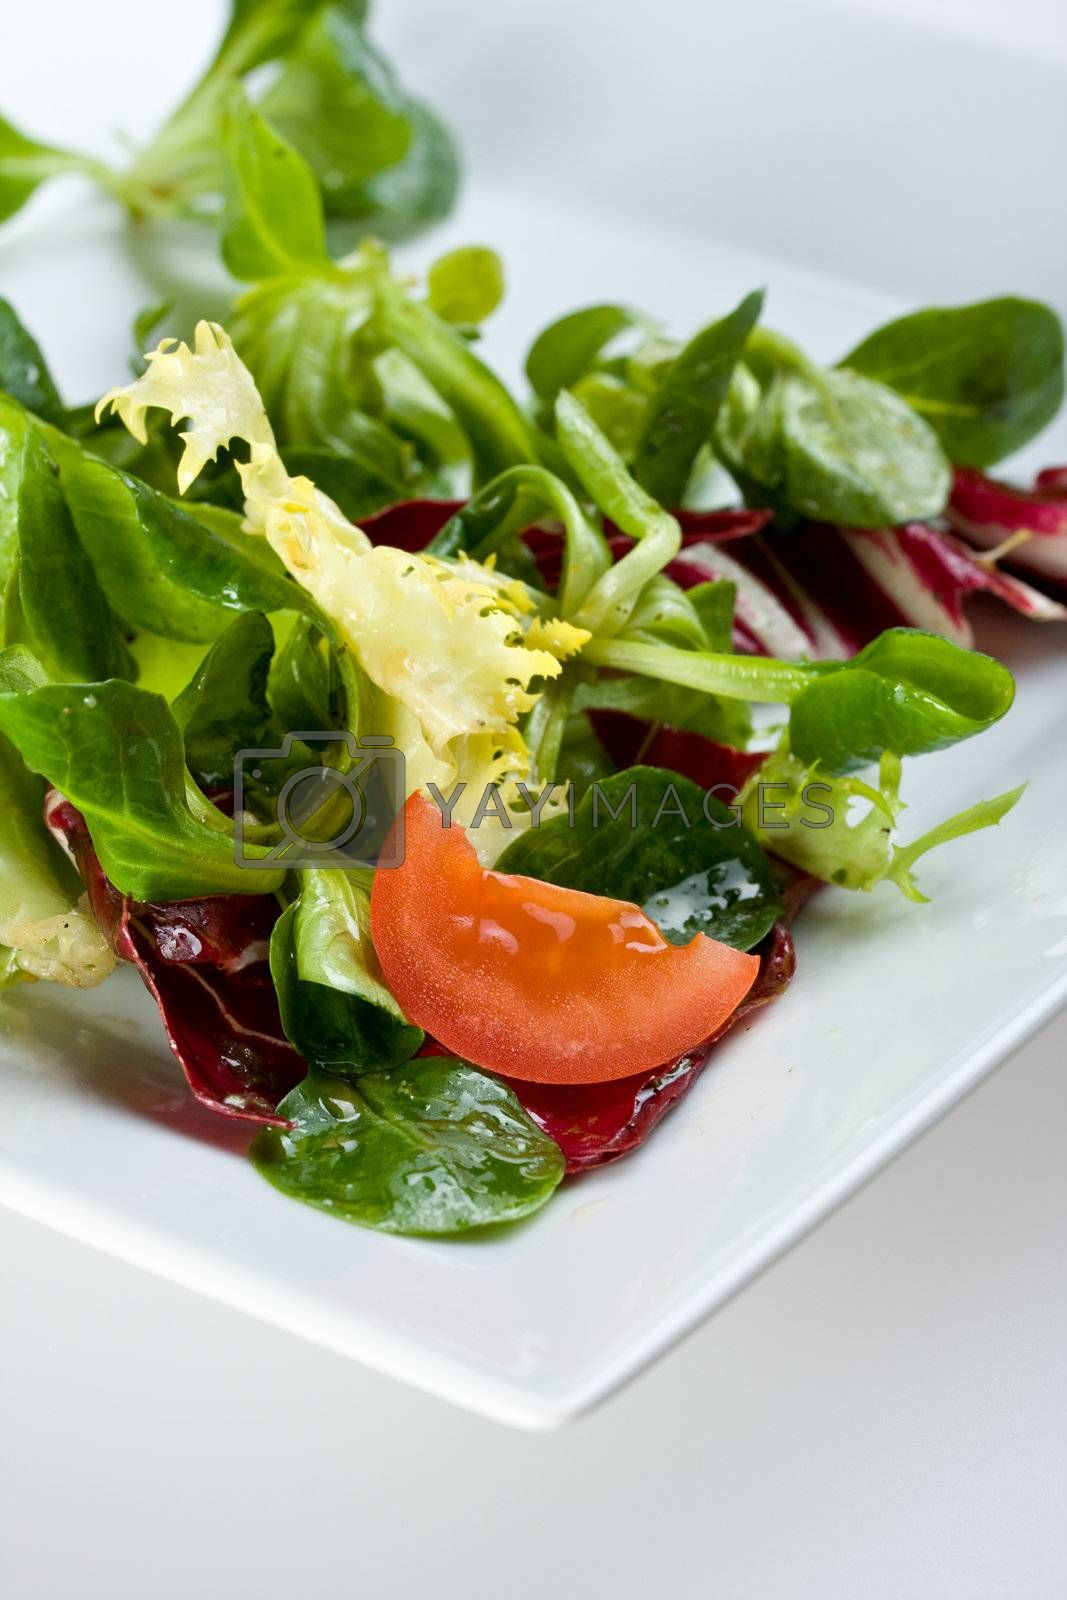 detail of a mixed salad on a white plate